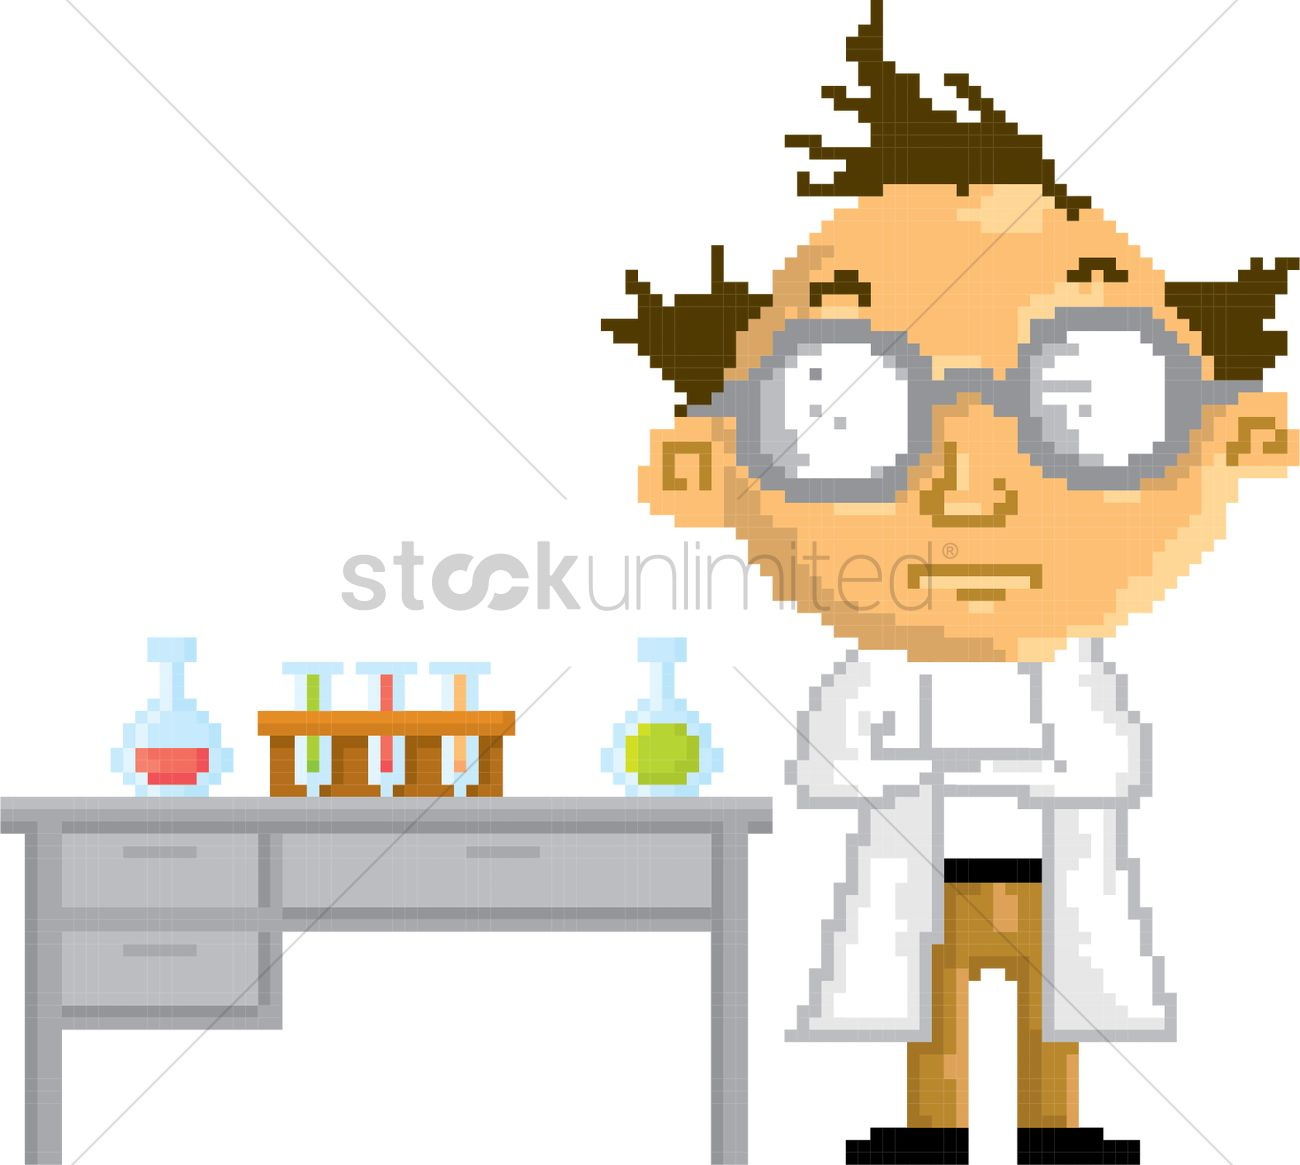 pixel art scientist vector image 2016134 stockunlimited pixel art scientist vector image